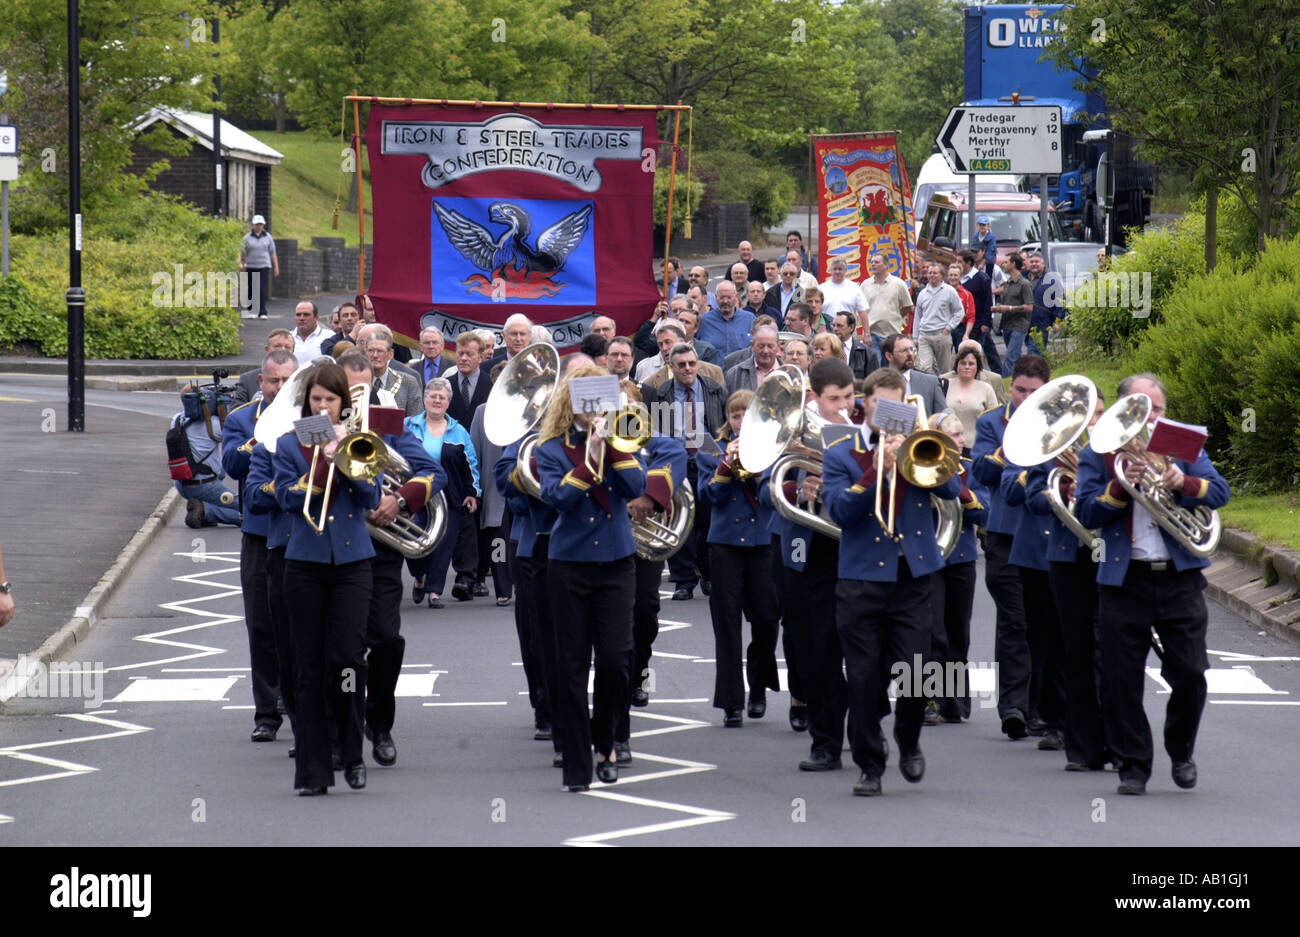 Workers and their families march under trade union banners and led by a brass band from Corus Ebbw Vale tinplate works Wales UK - Stock Image